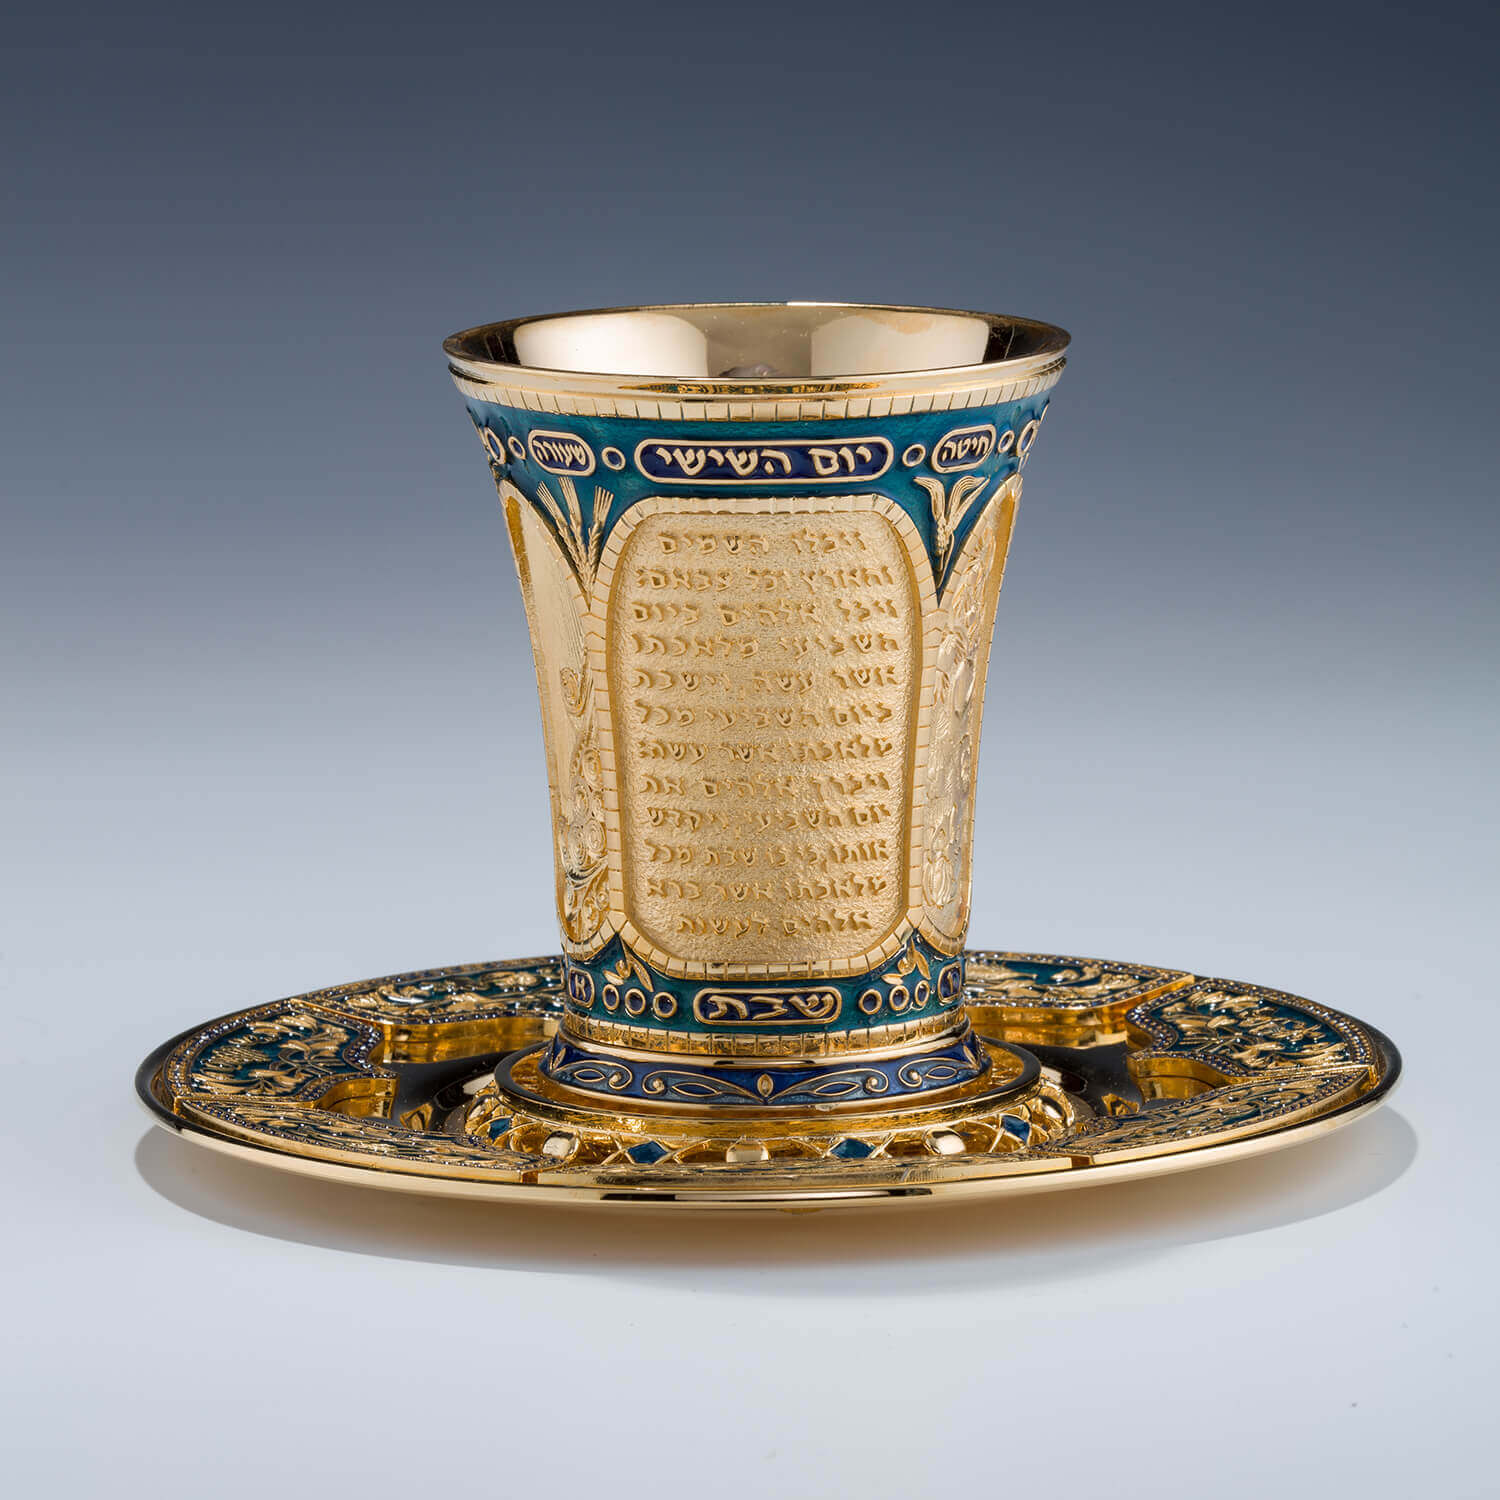 094. A LARGE STERLING AND ENAMEL KIDDUSH CUP BY YAAKOV DAVIDOFF